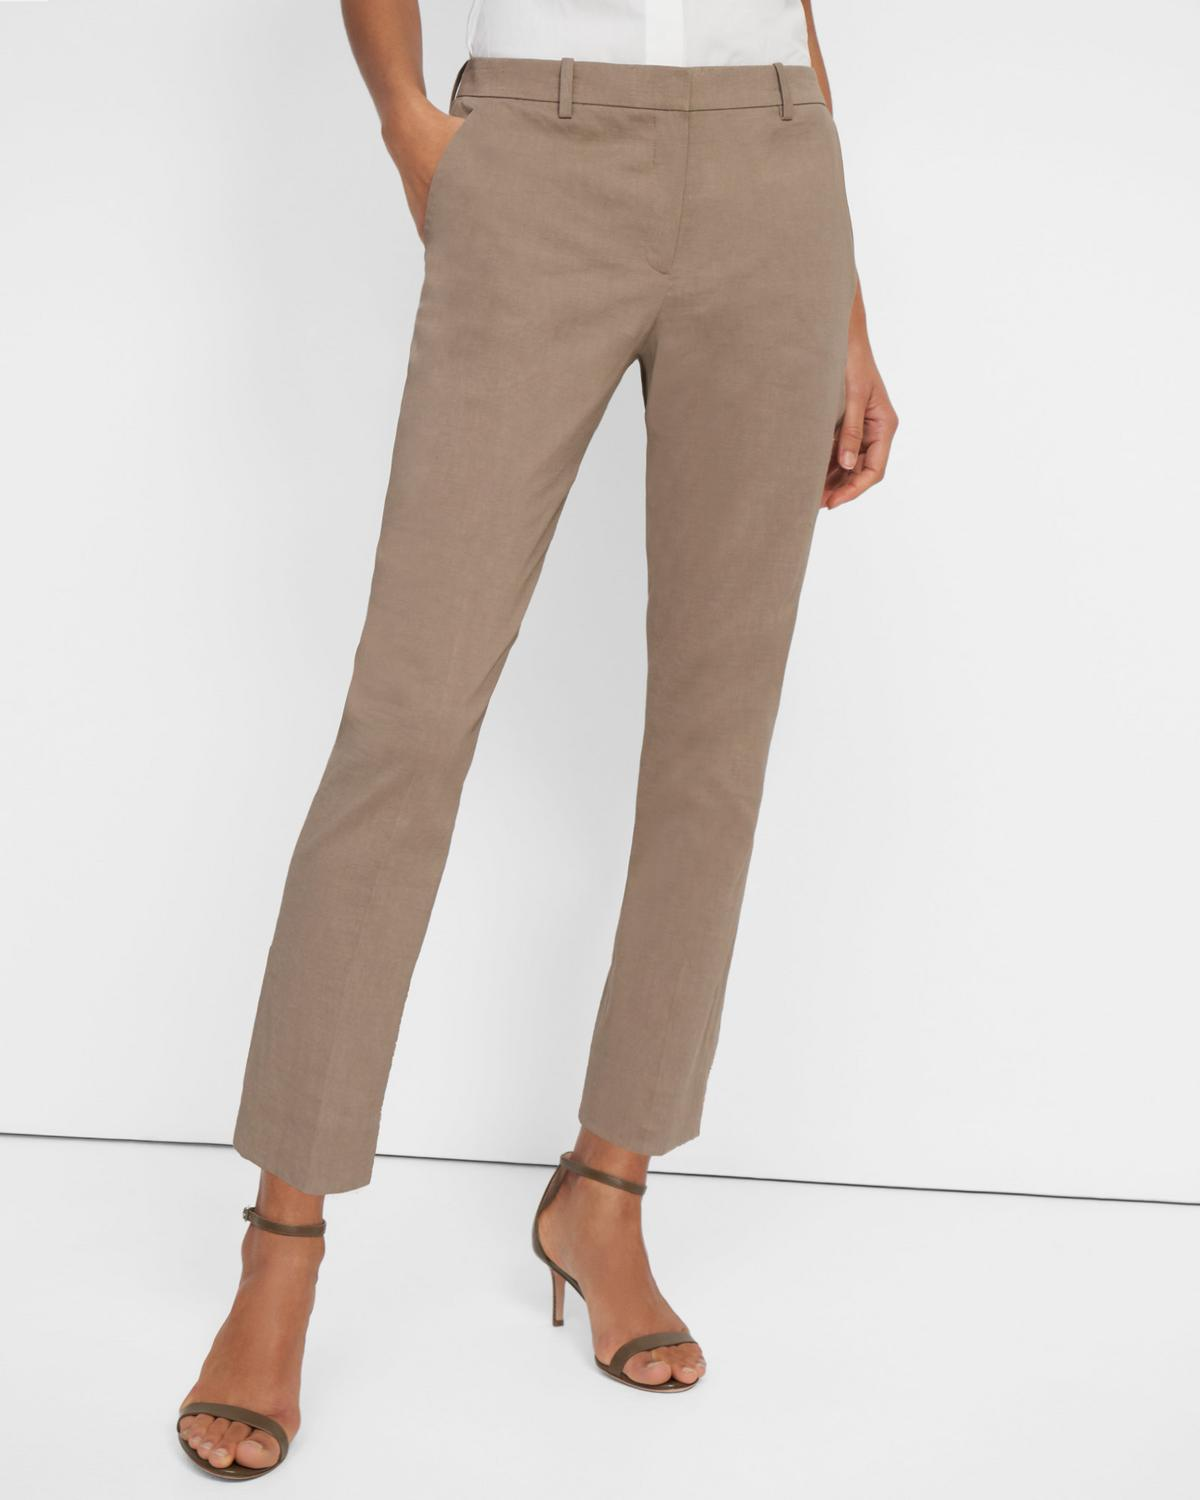 Treeca Pant in Good Linen